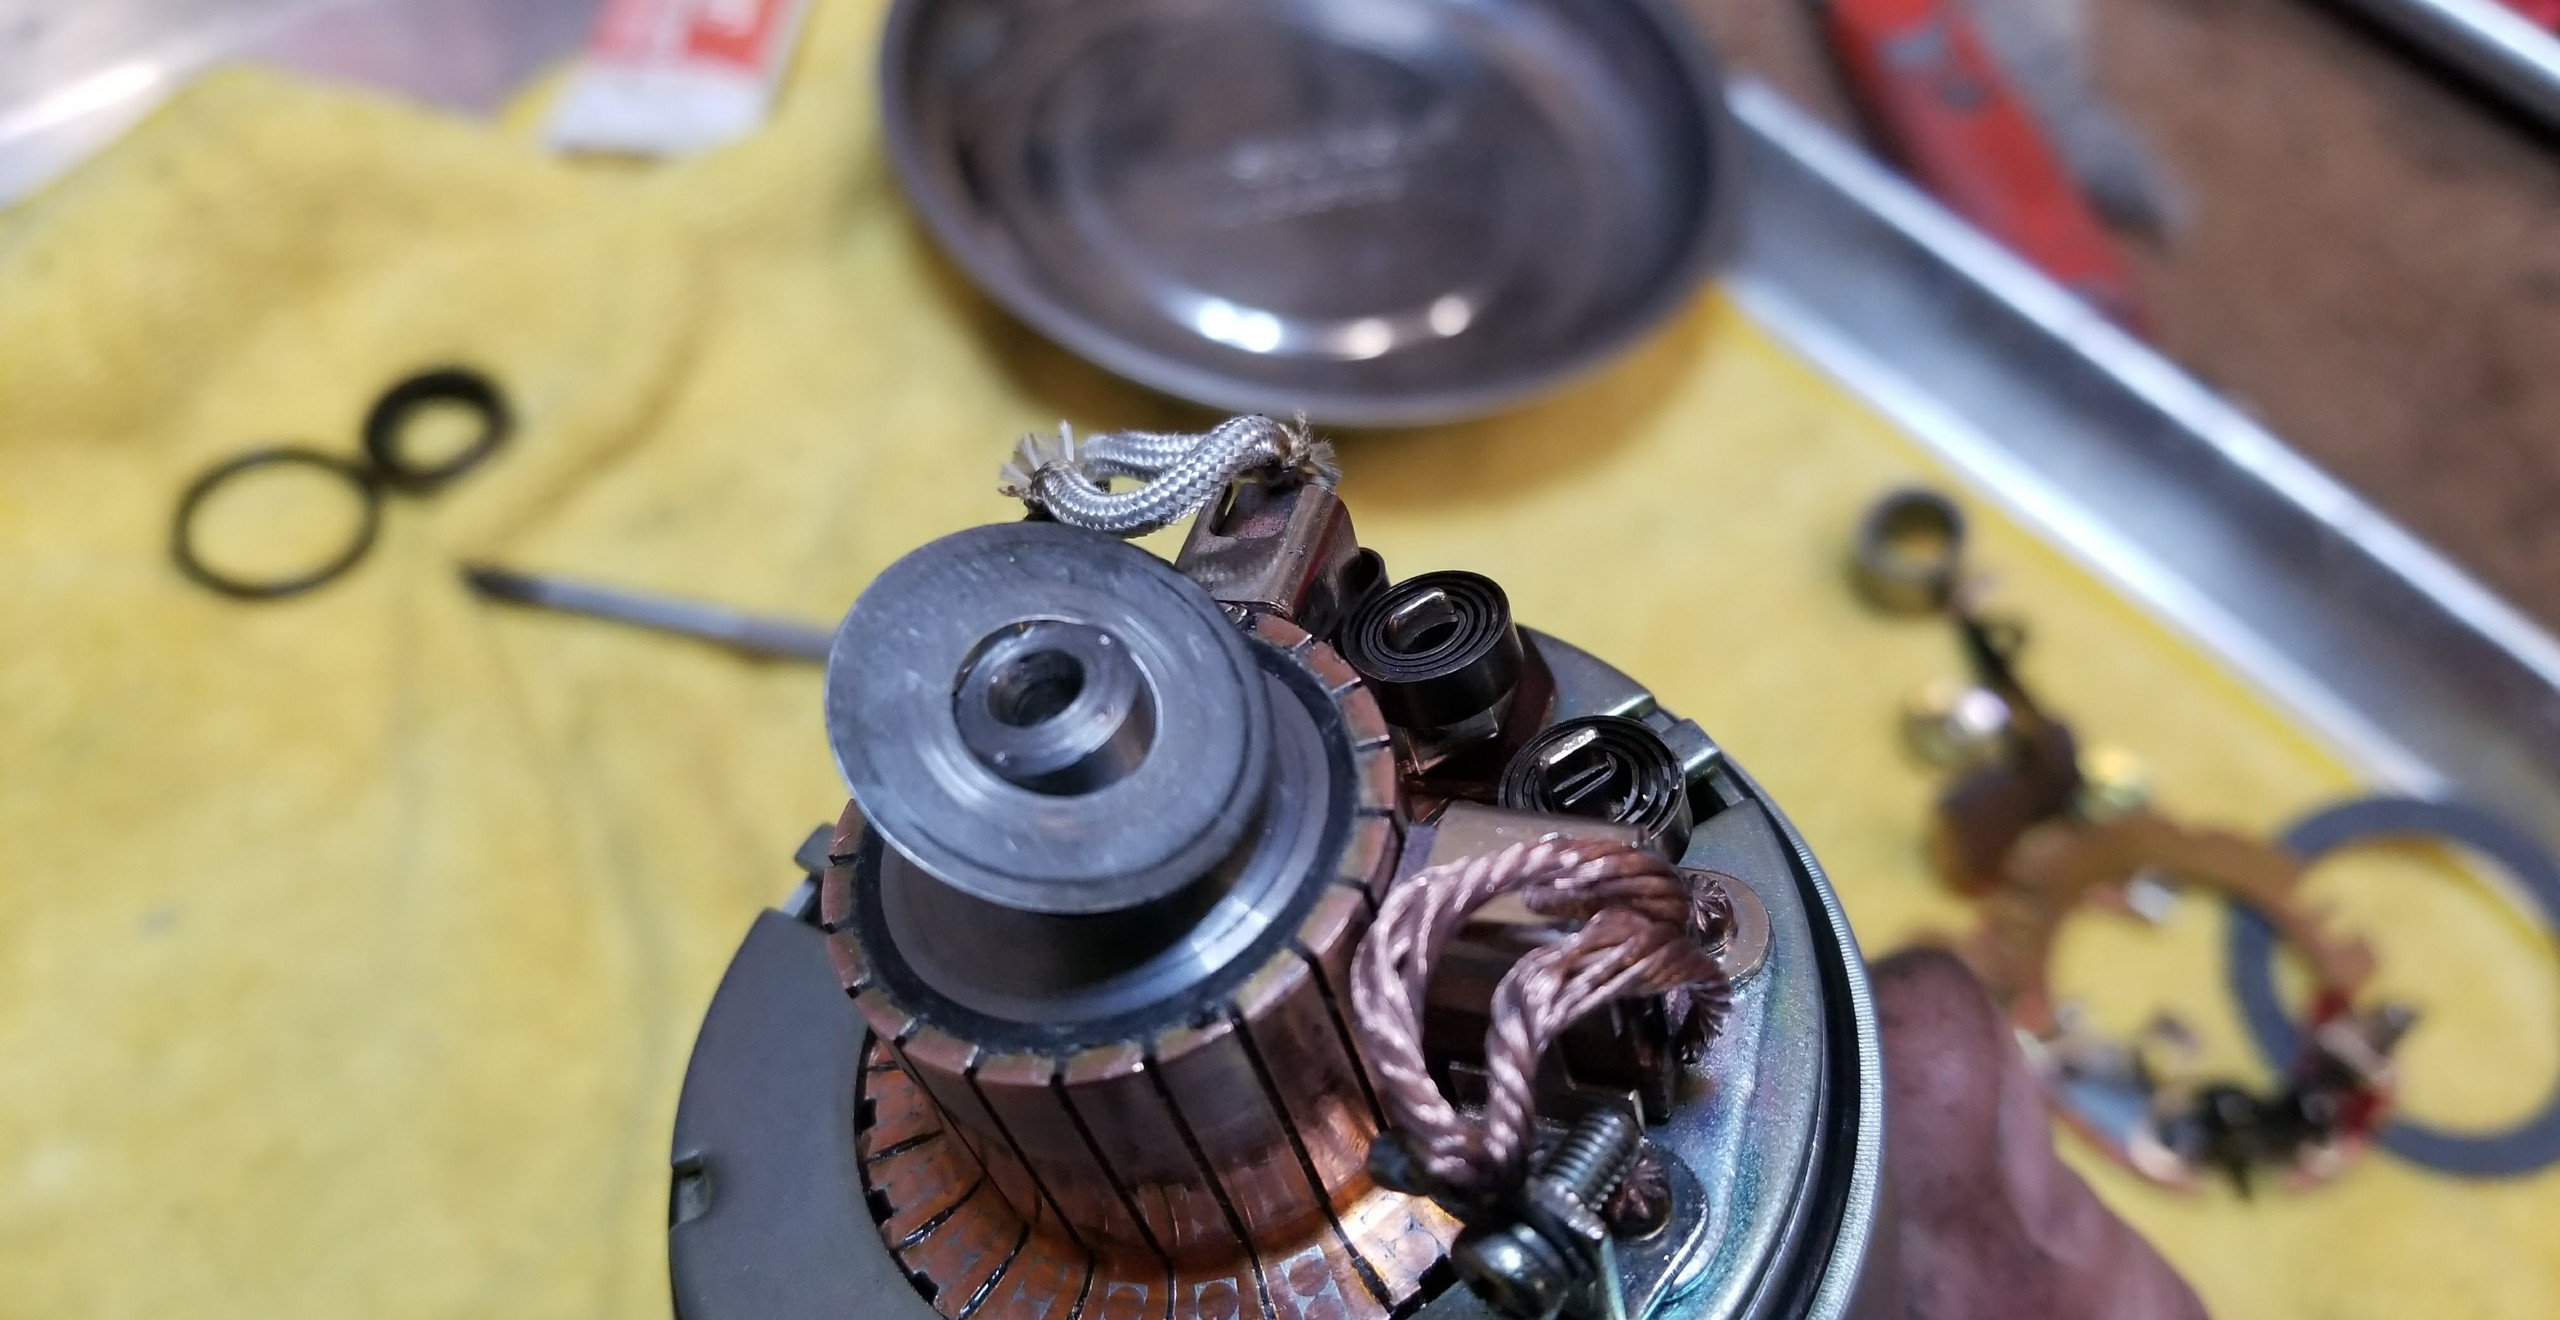 Starter all cleaned up, with   new gaskets, seal and lubrication, plus renewed wiring contacts and insulating grommets.